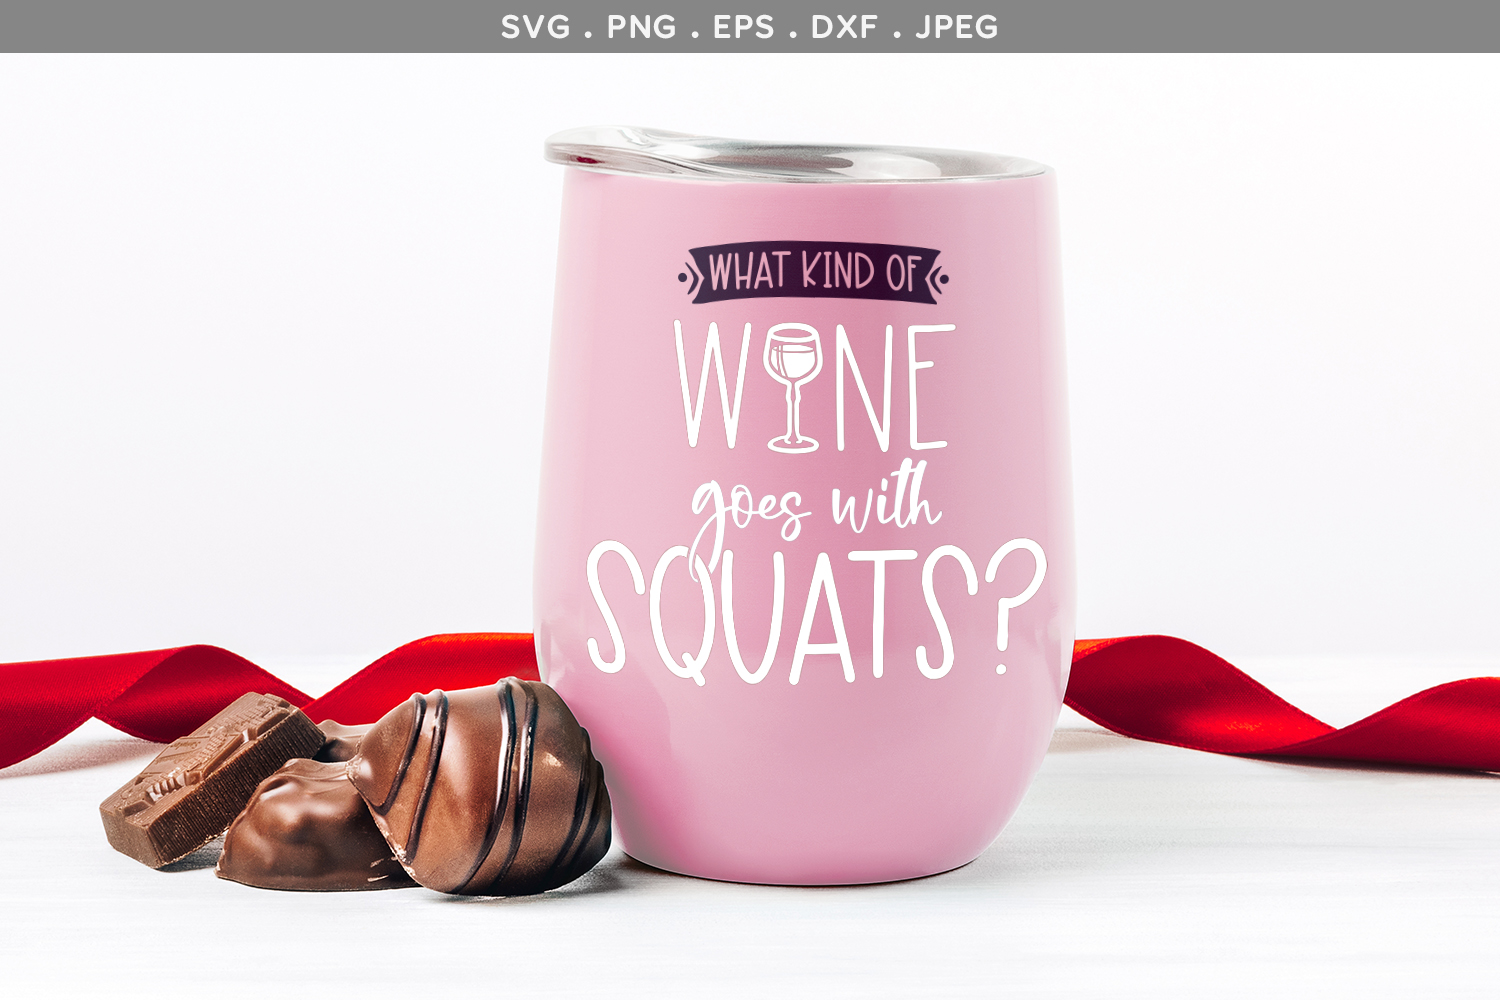 What kind of wine goes with squats? - svg, printable example image 1